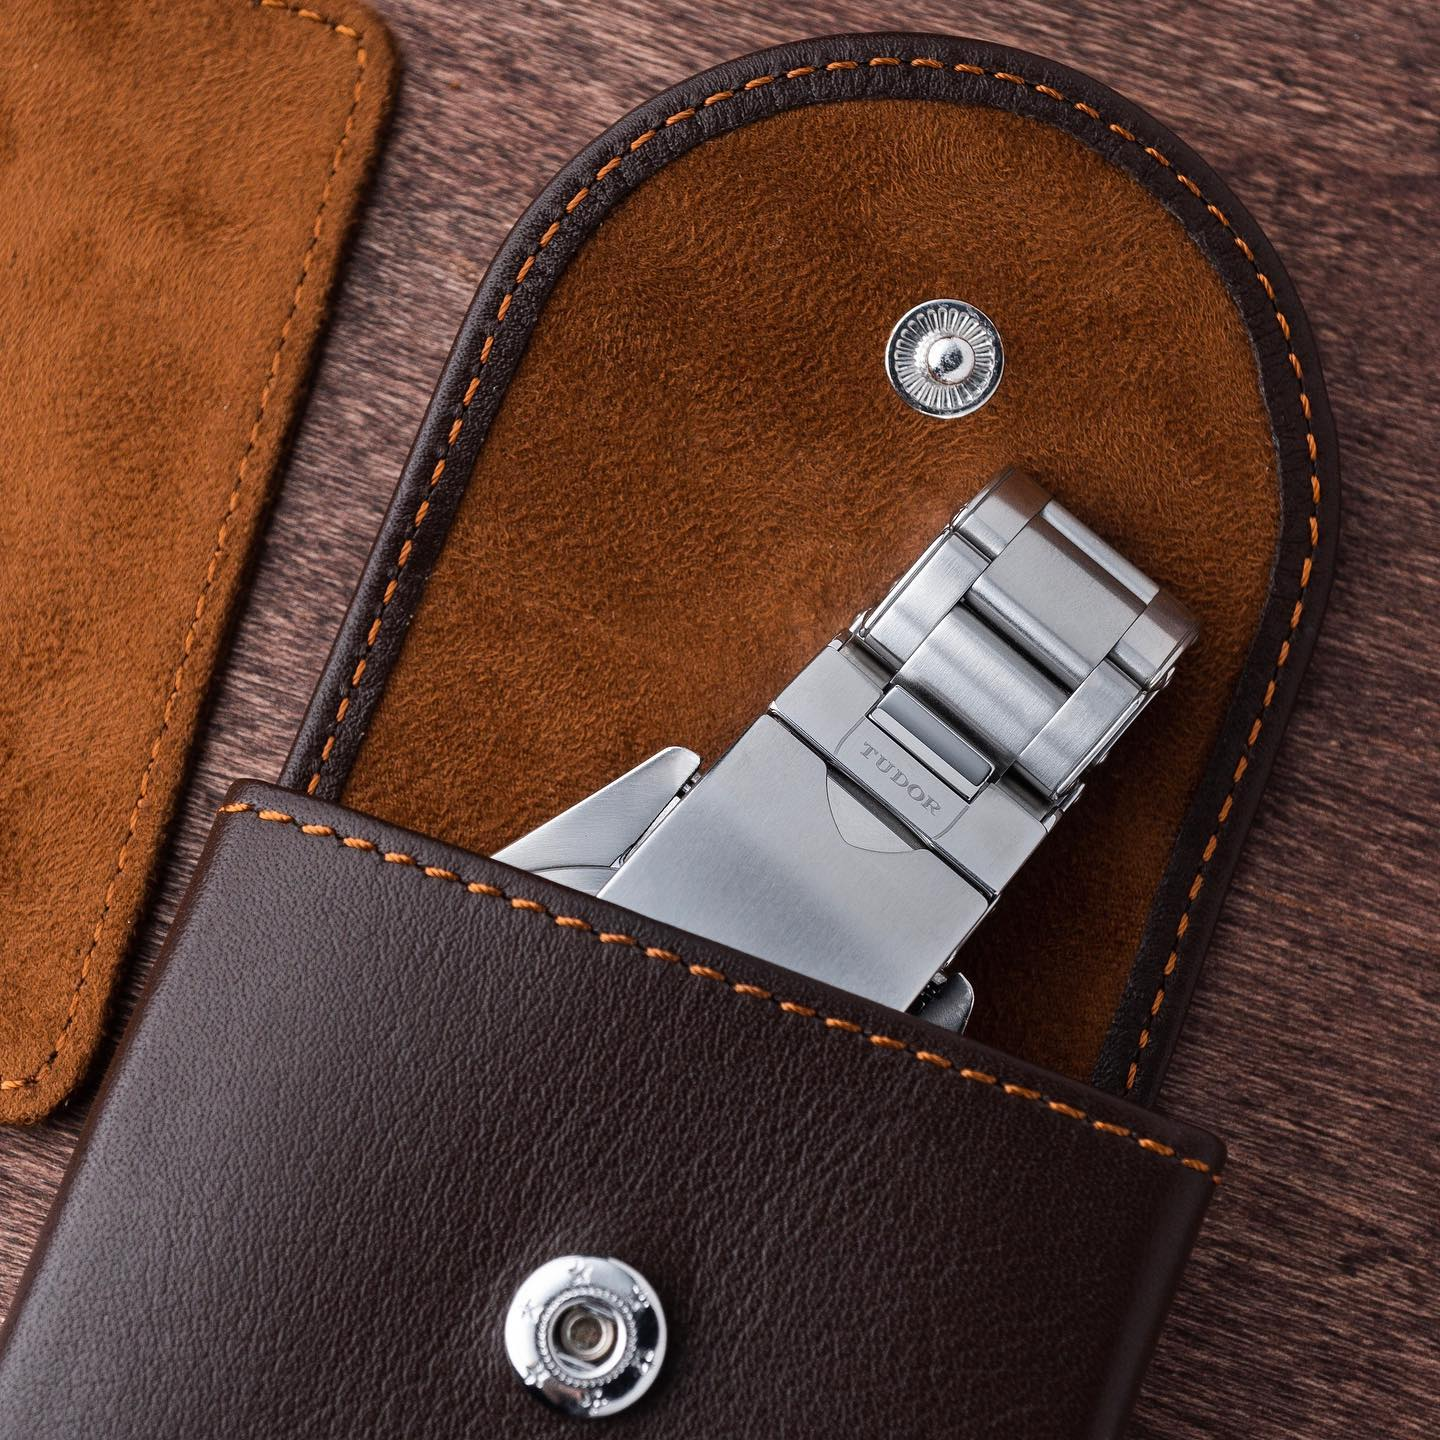 watch in everest leather pouch